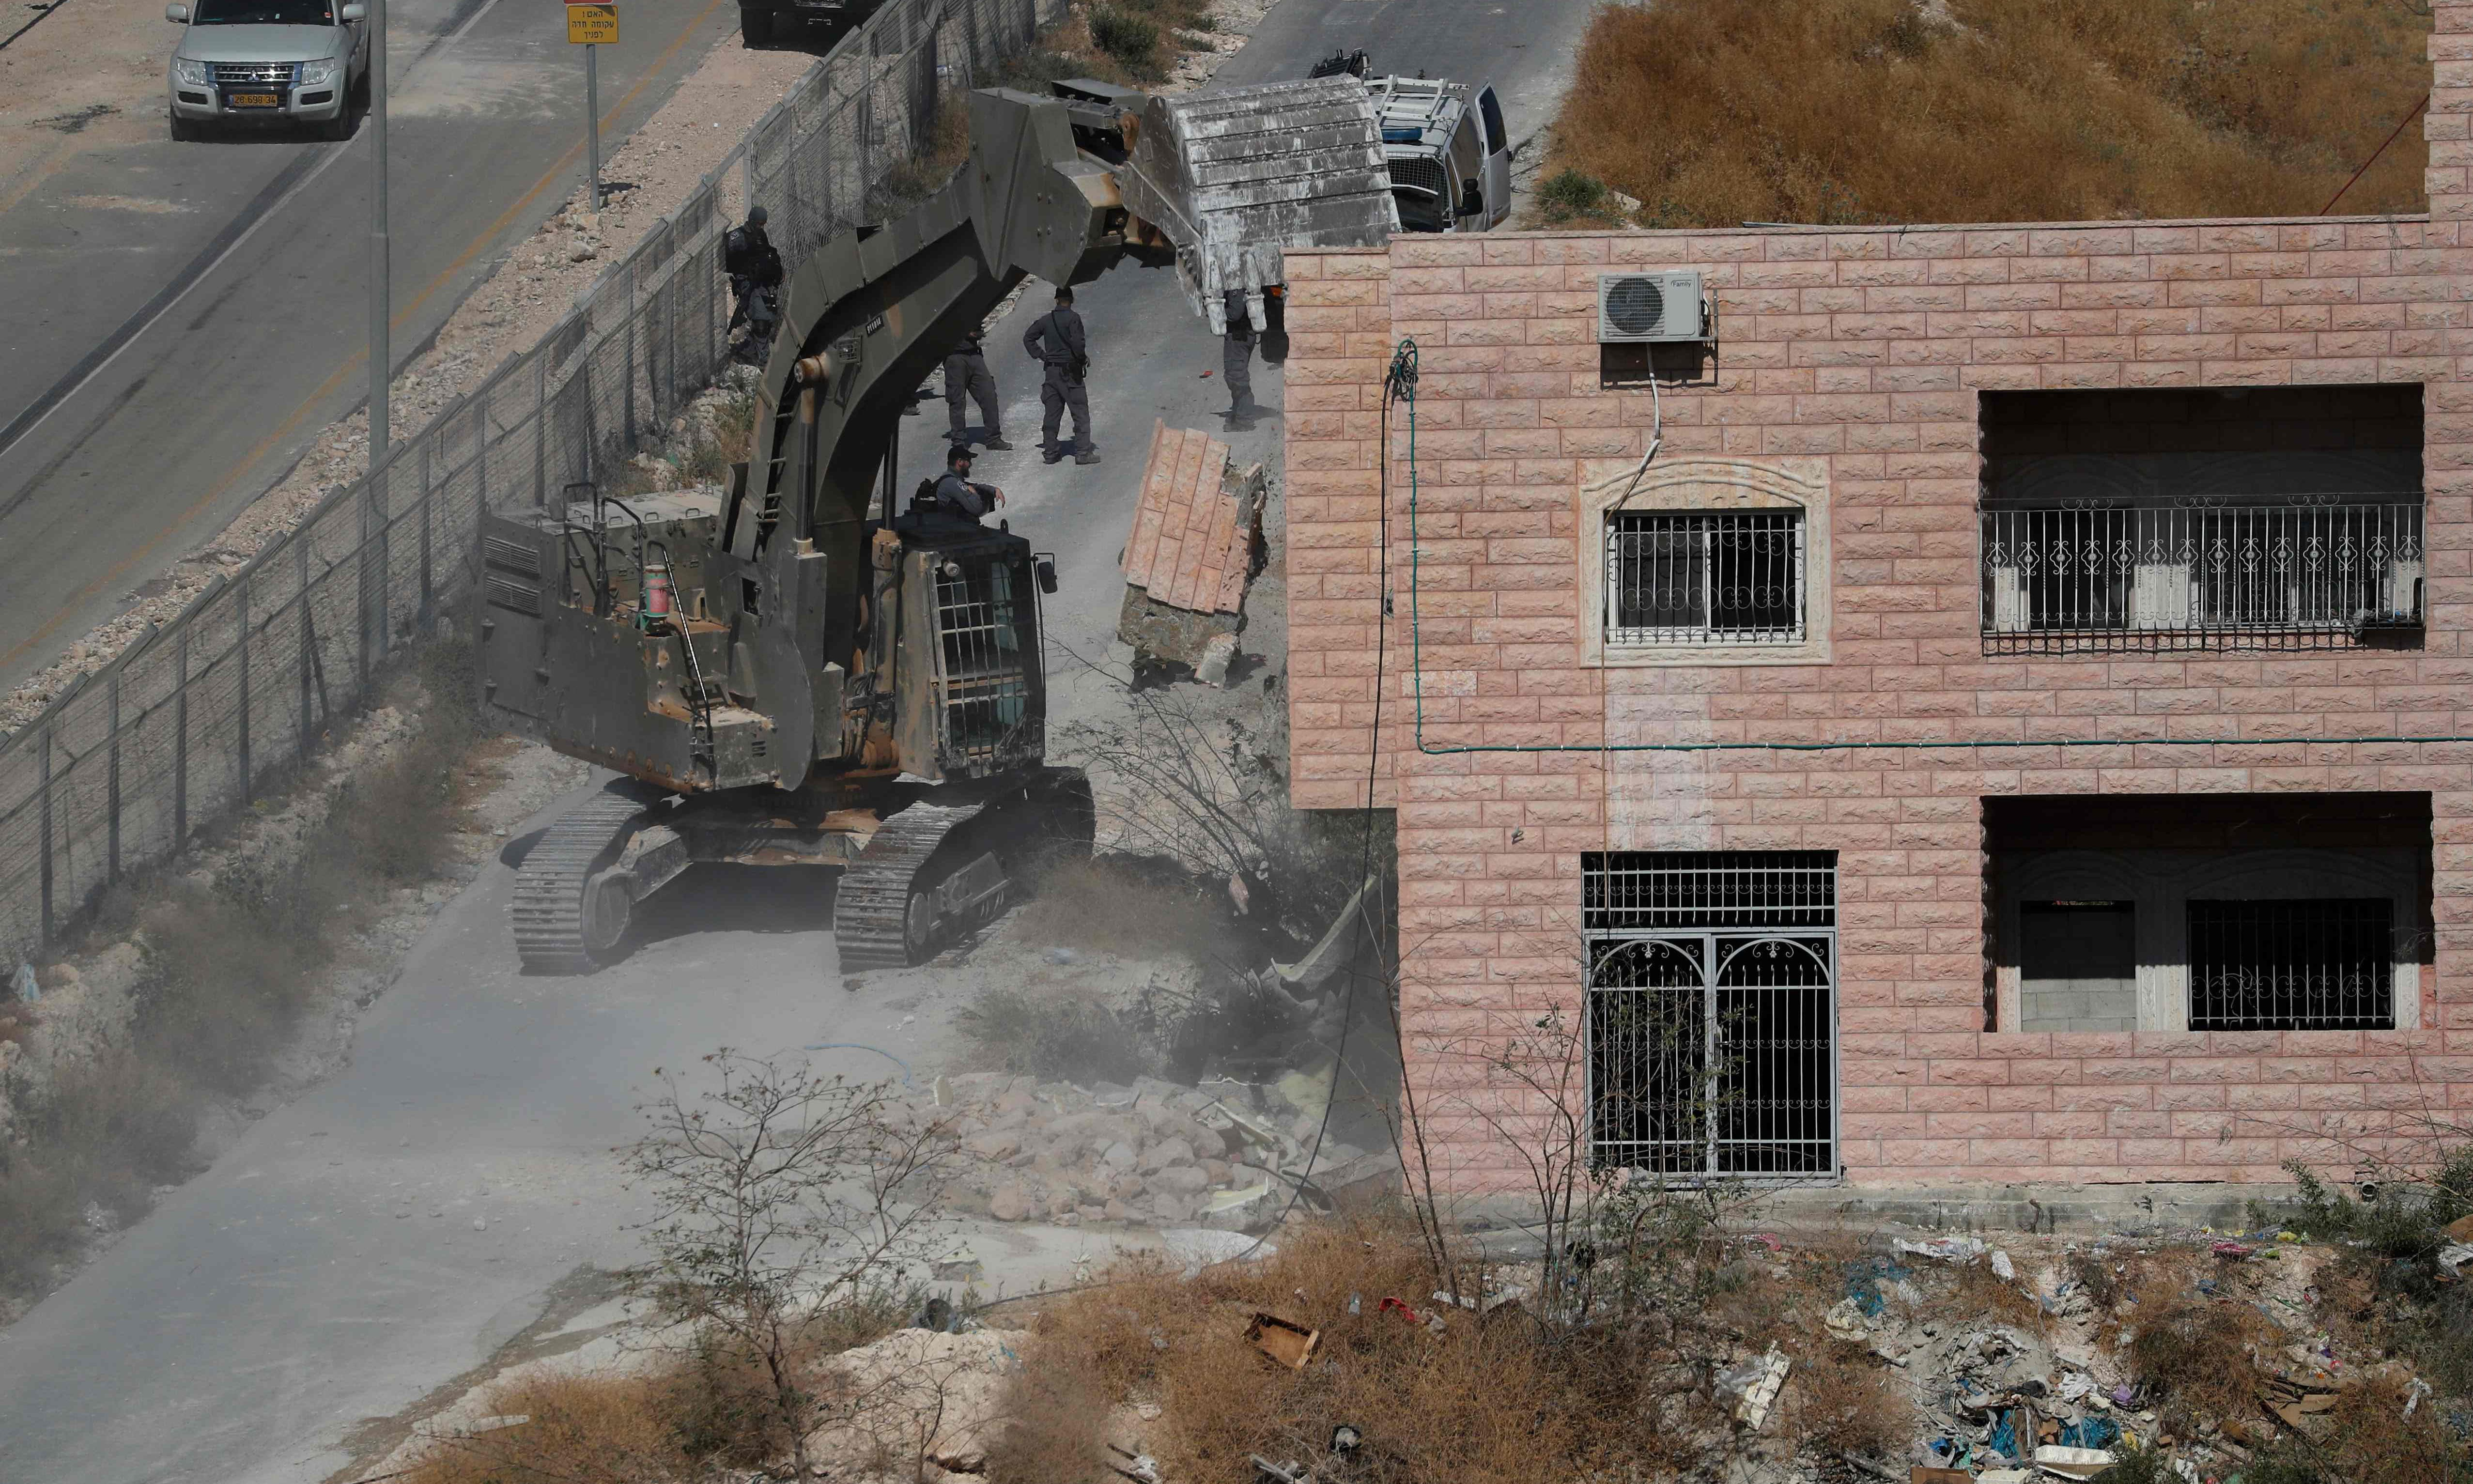 Israeli security forces demolish a building which was earlier evacuated of its residents. — AFP/File